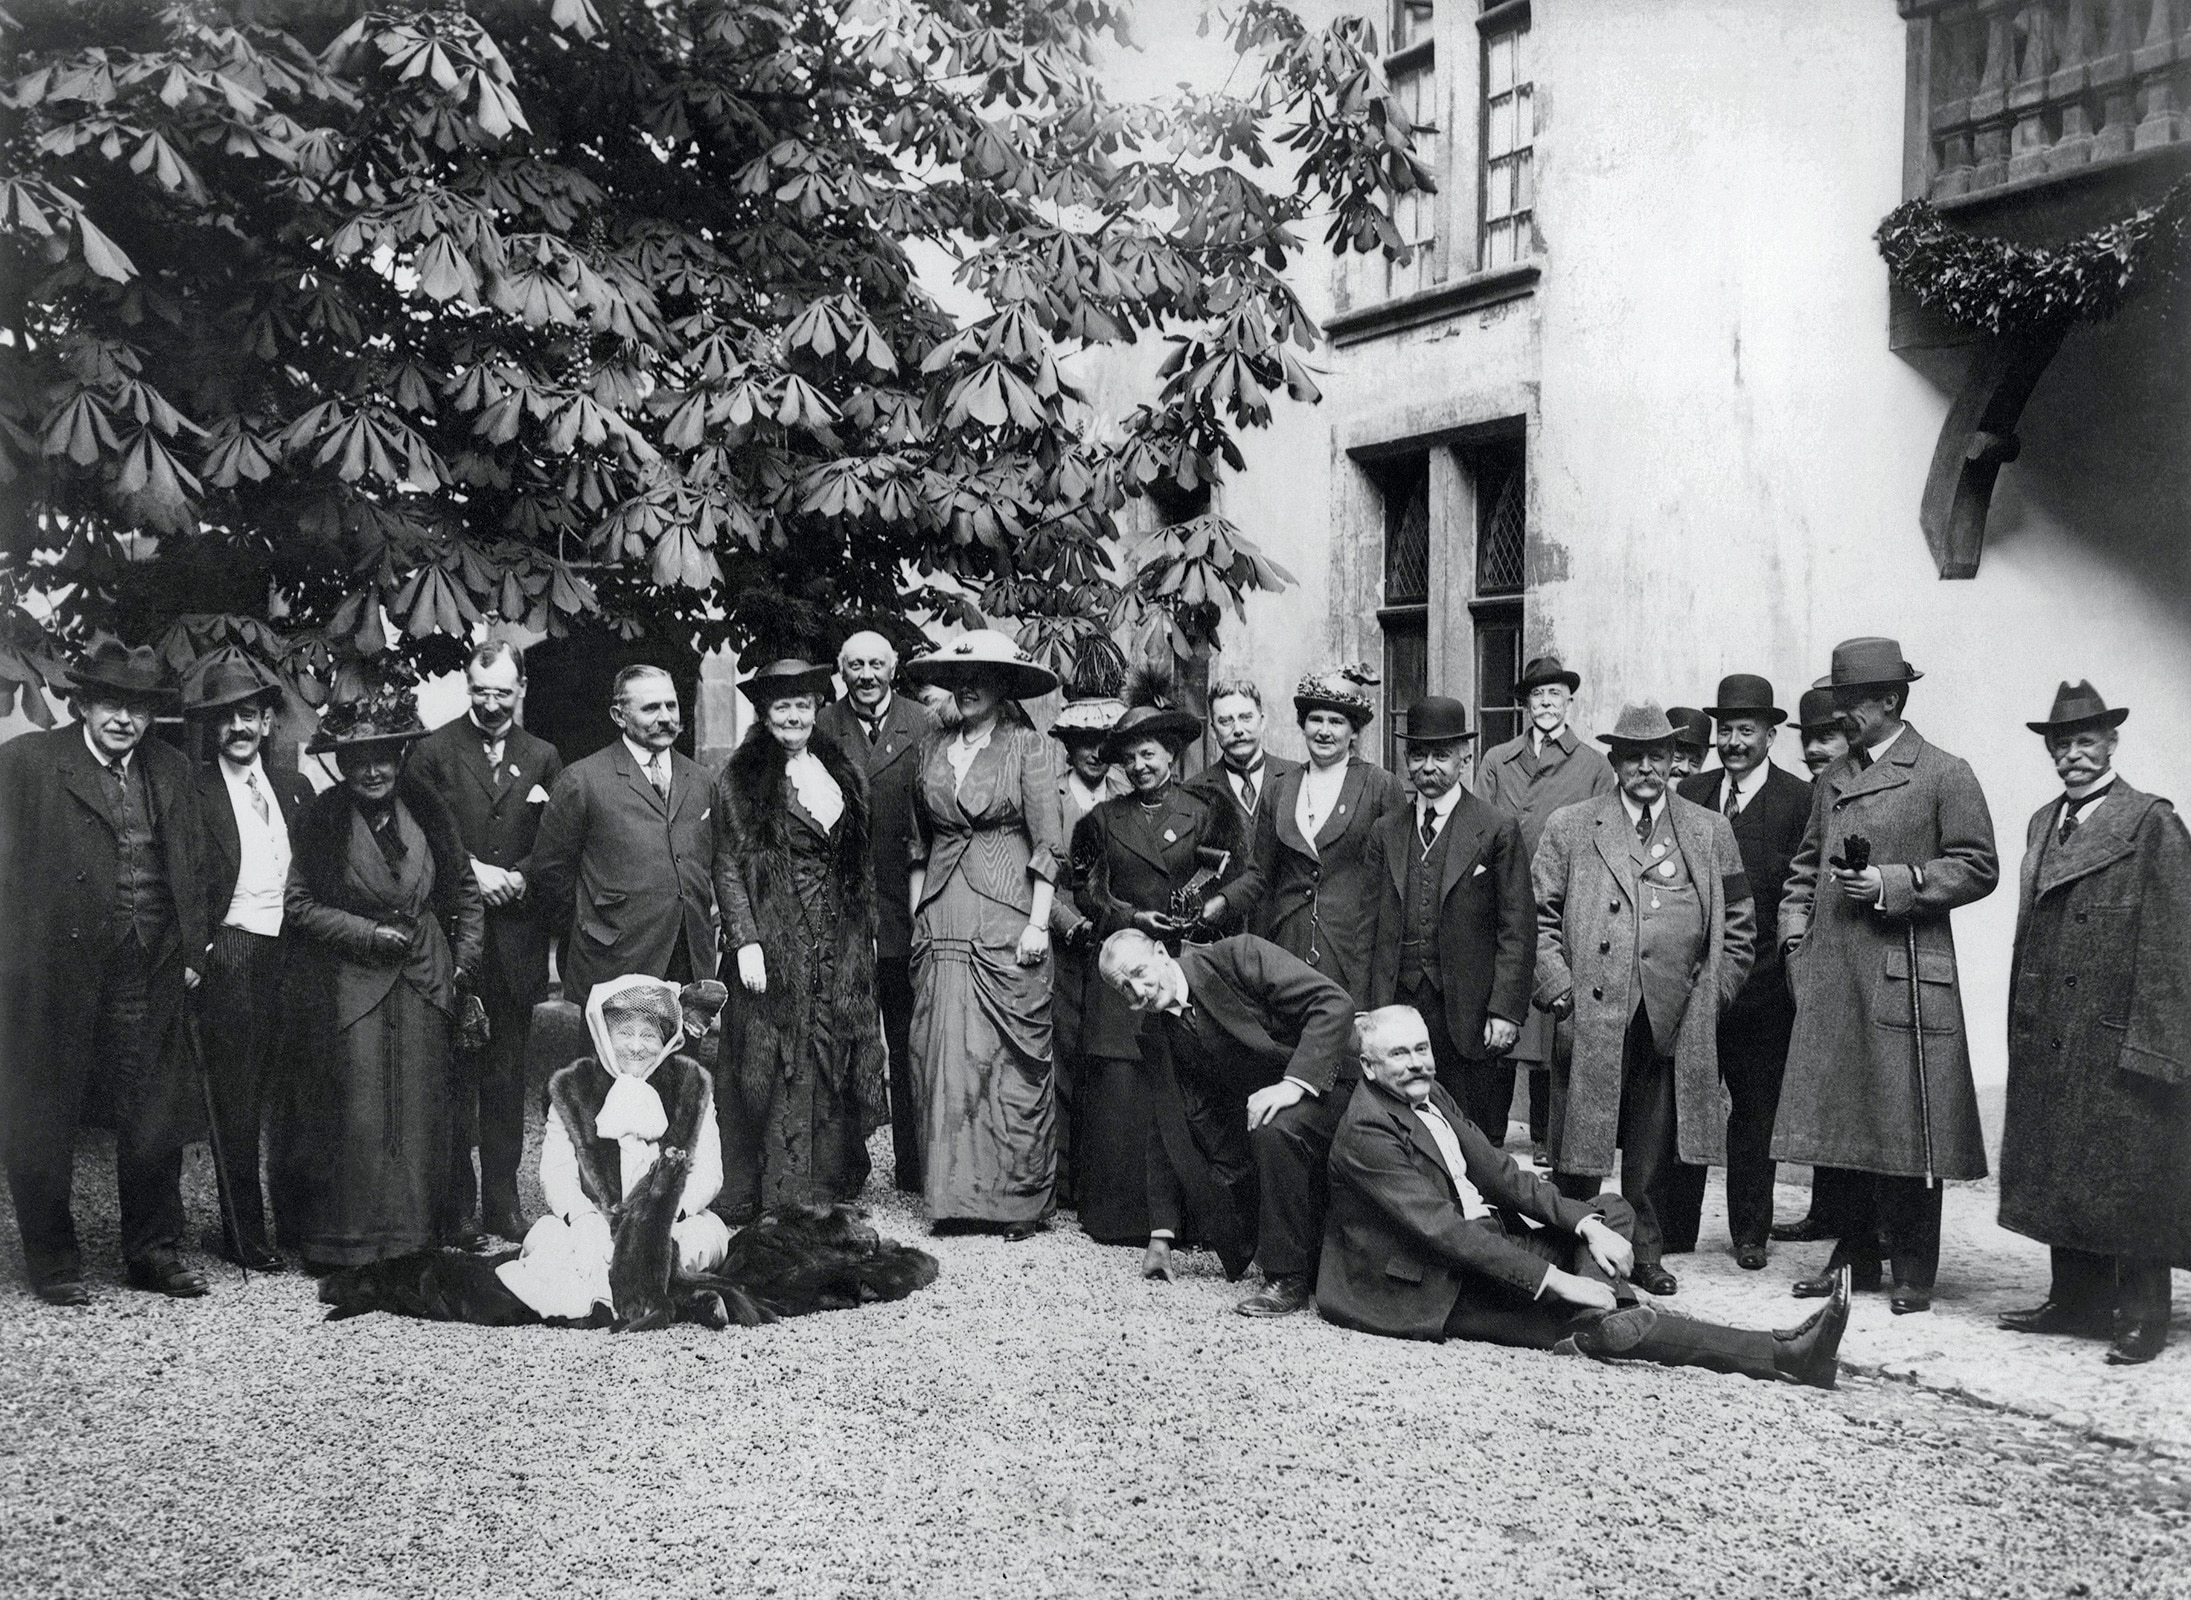 16th IOC Session and 5th Congress, Lausanne, 1913 - The IOC Members hosted by Baron de Blonay at the Château de Grandson.